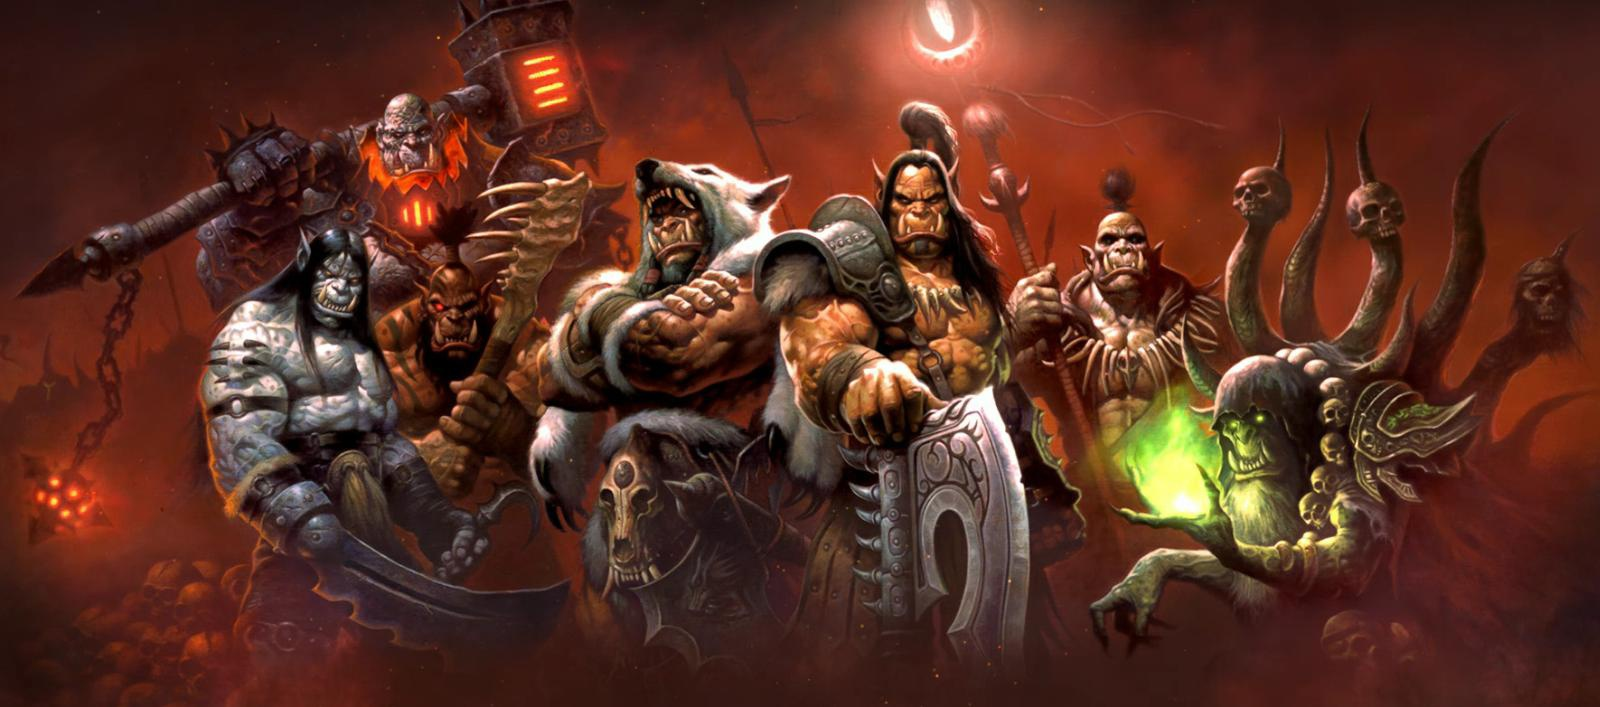 World of Warcraft Warlords of Draenor Orc leaders